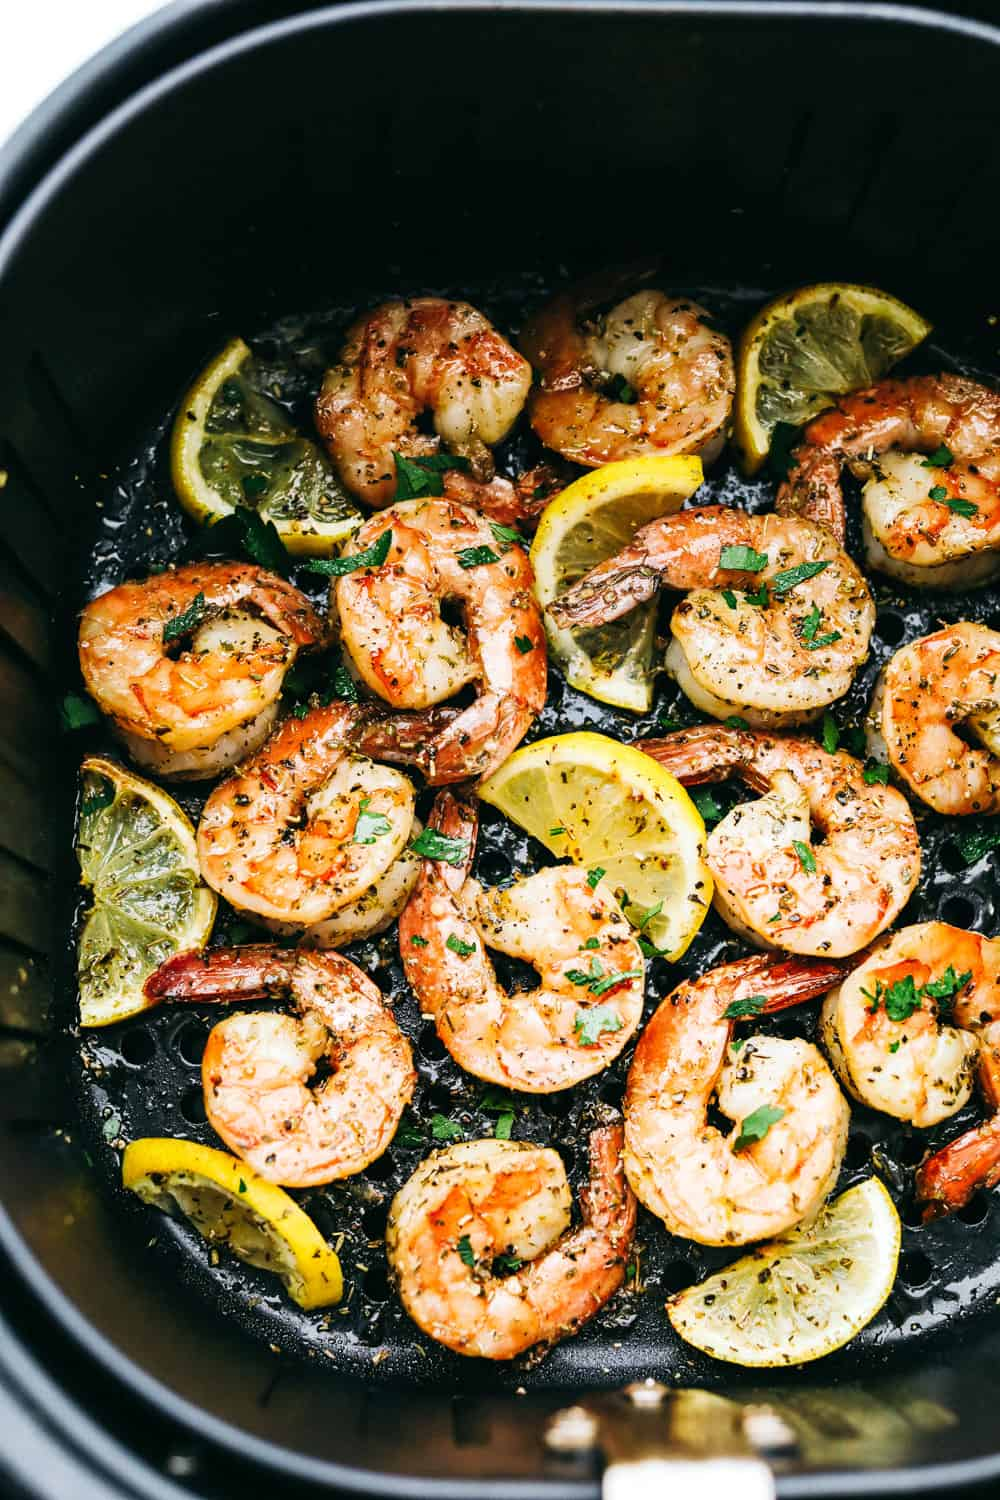 Shrimp with lemons in air fryer.